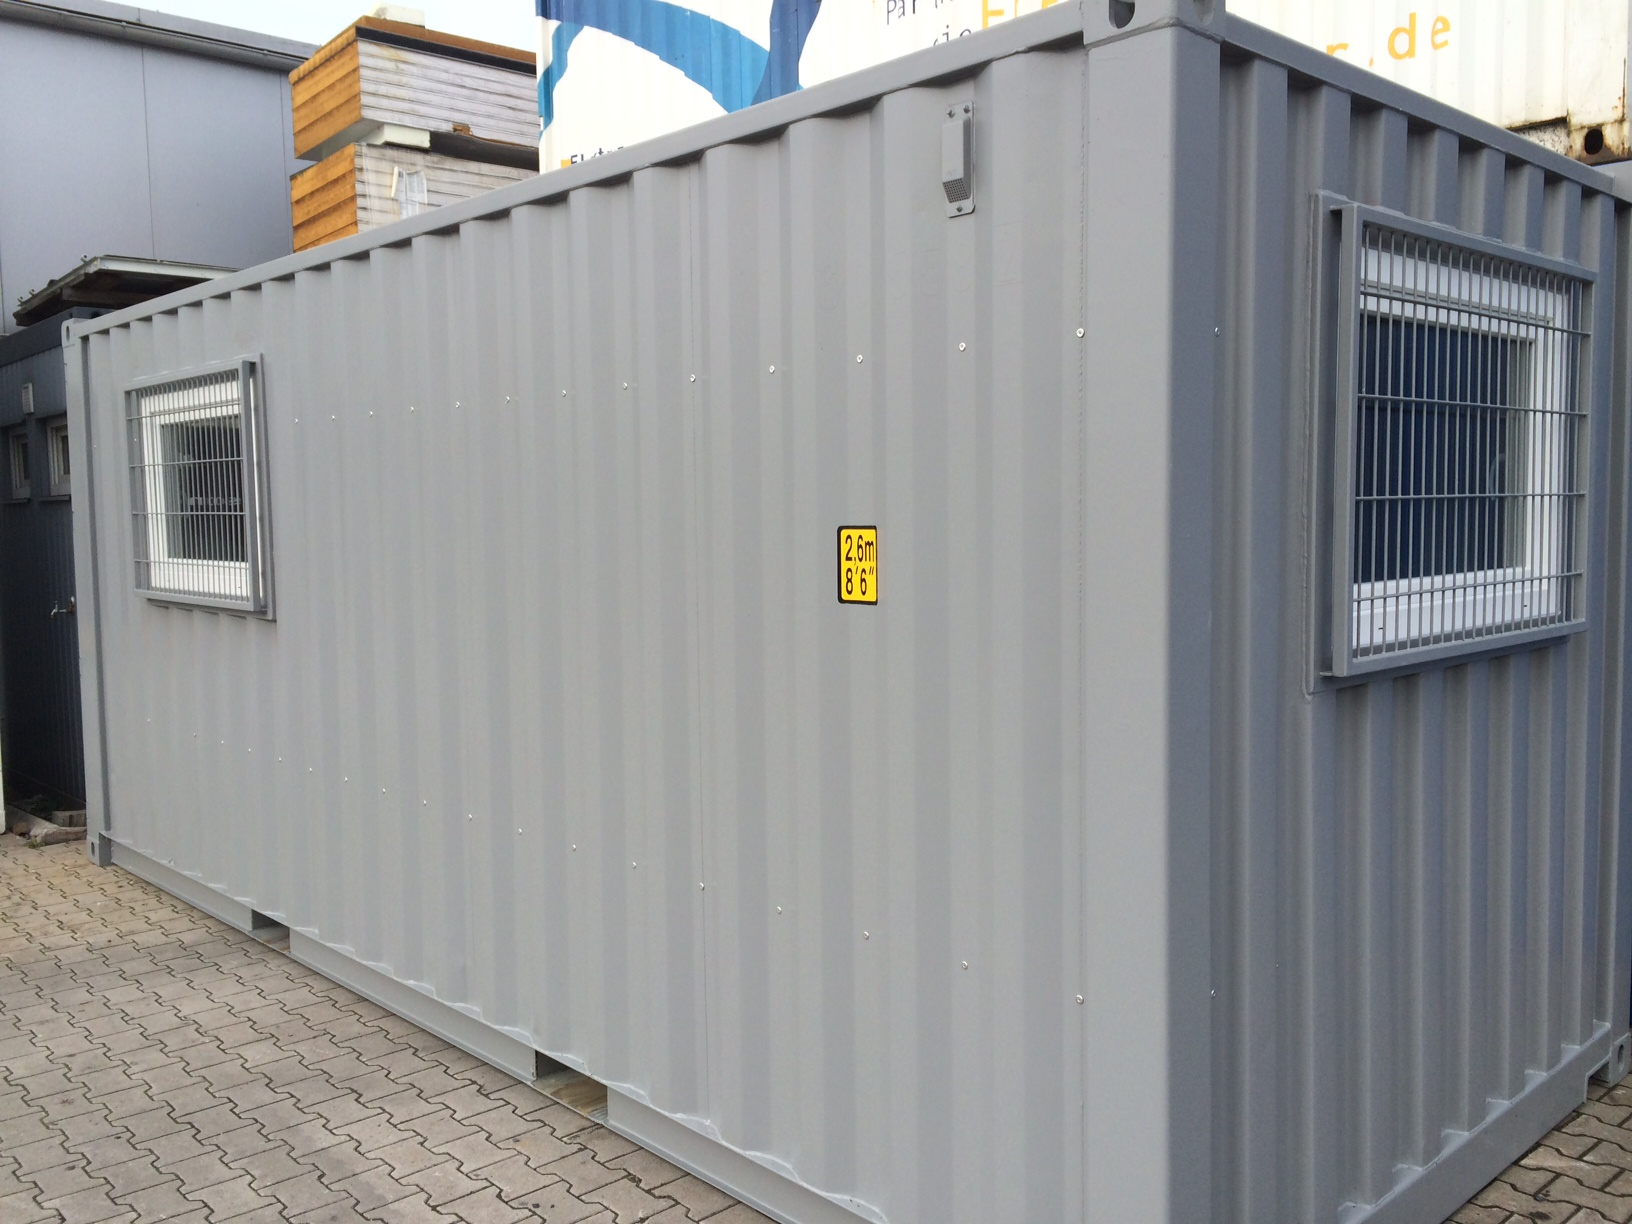 Pool Container Kaufen Preise Wohncontainer Kaufen Container Kaufen Preise Die